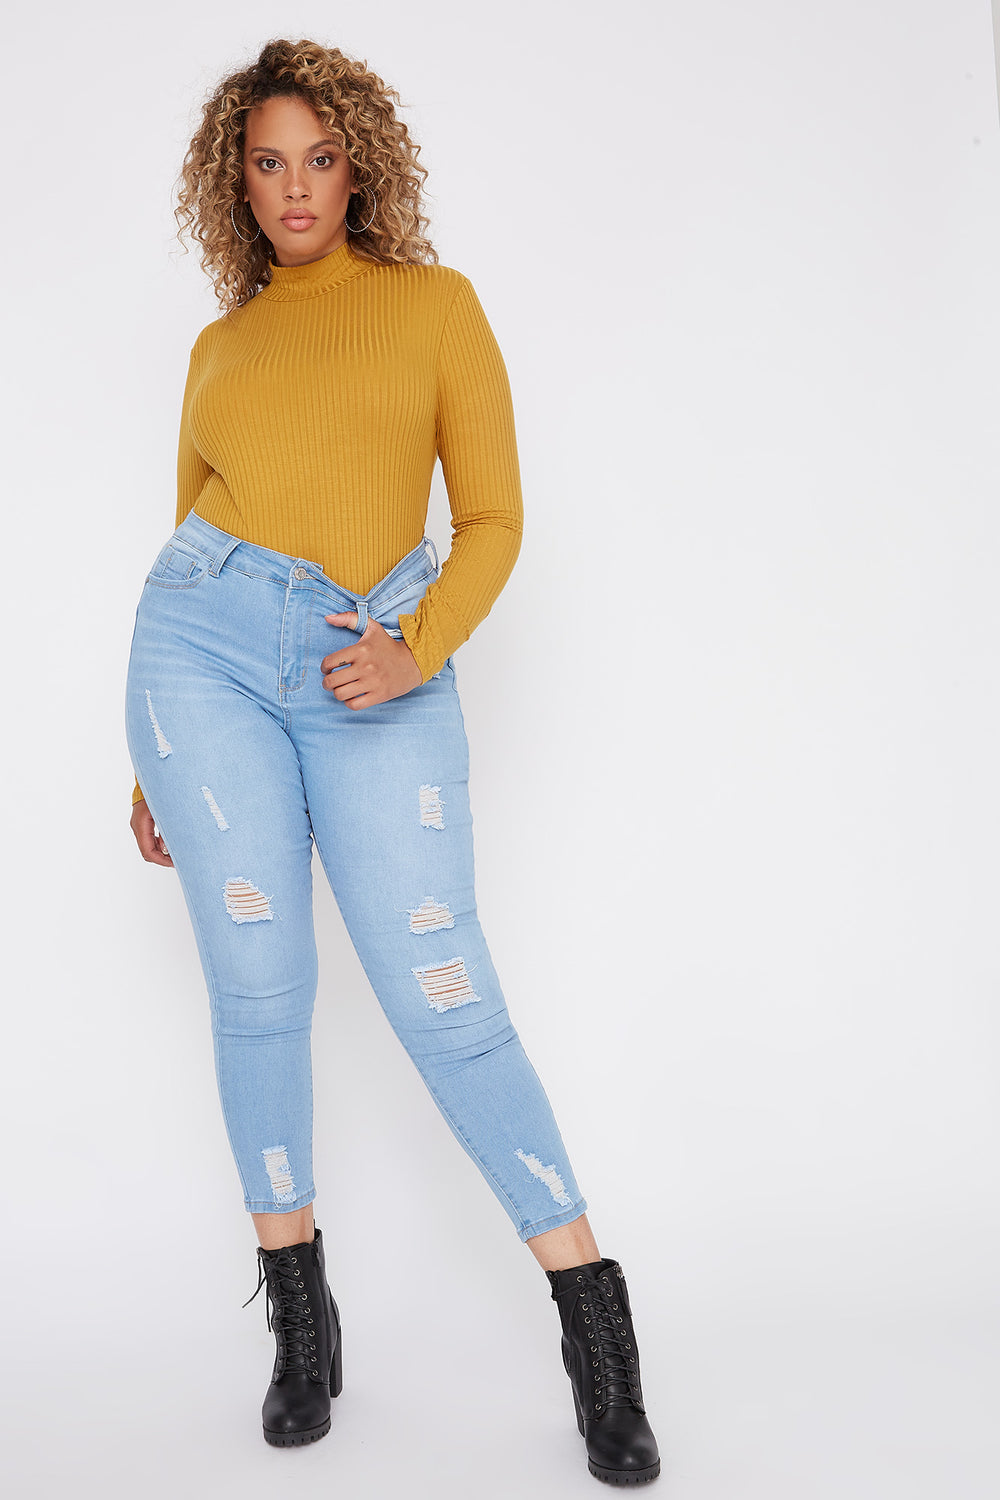 Plus Size Butt, I Love You High-Rise Distressed Push-Up Cropped Skinny Jean Light Denim Blue